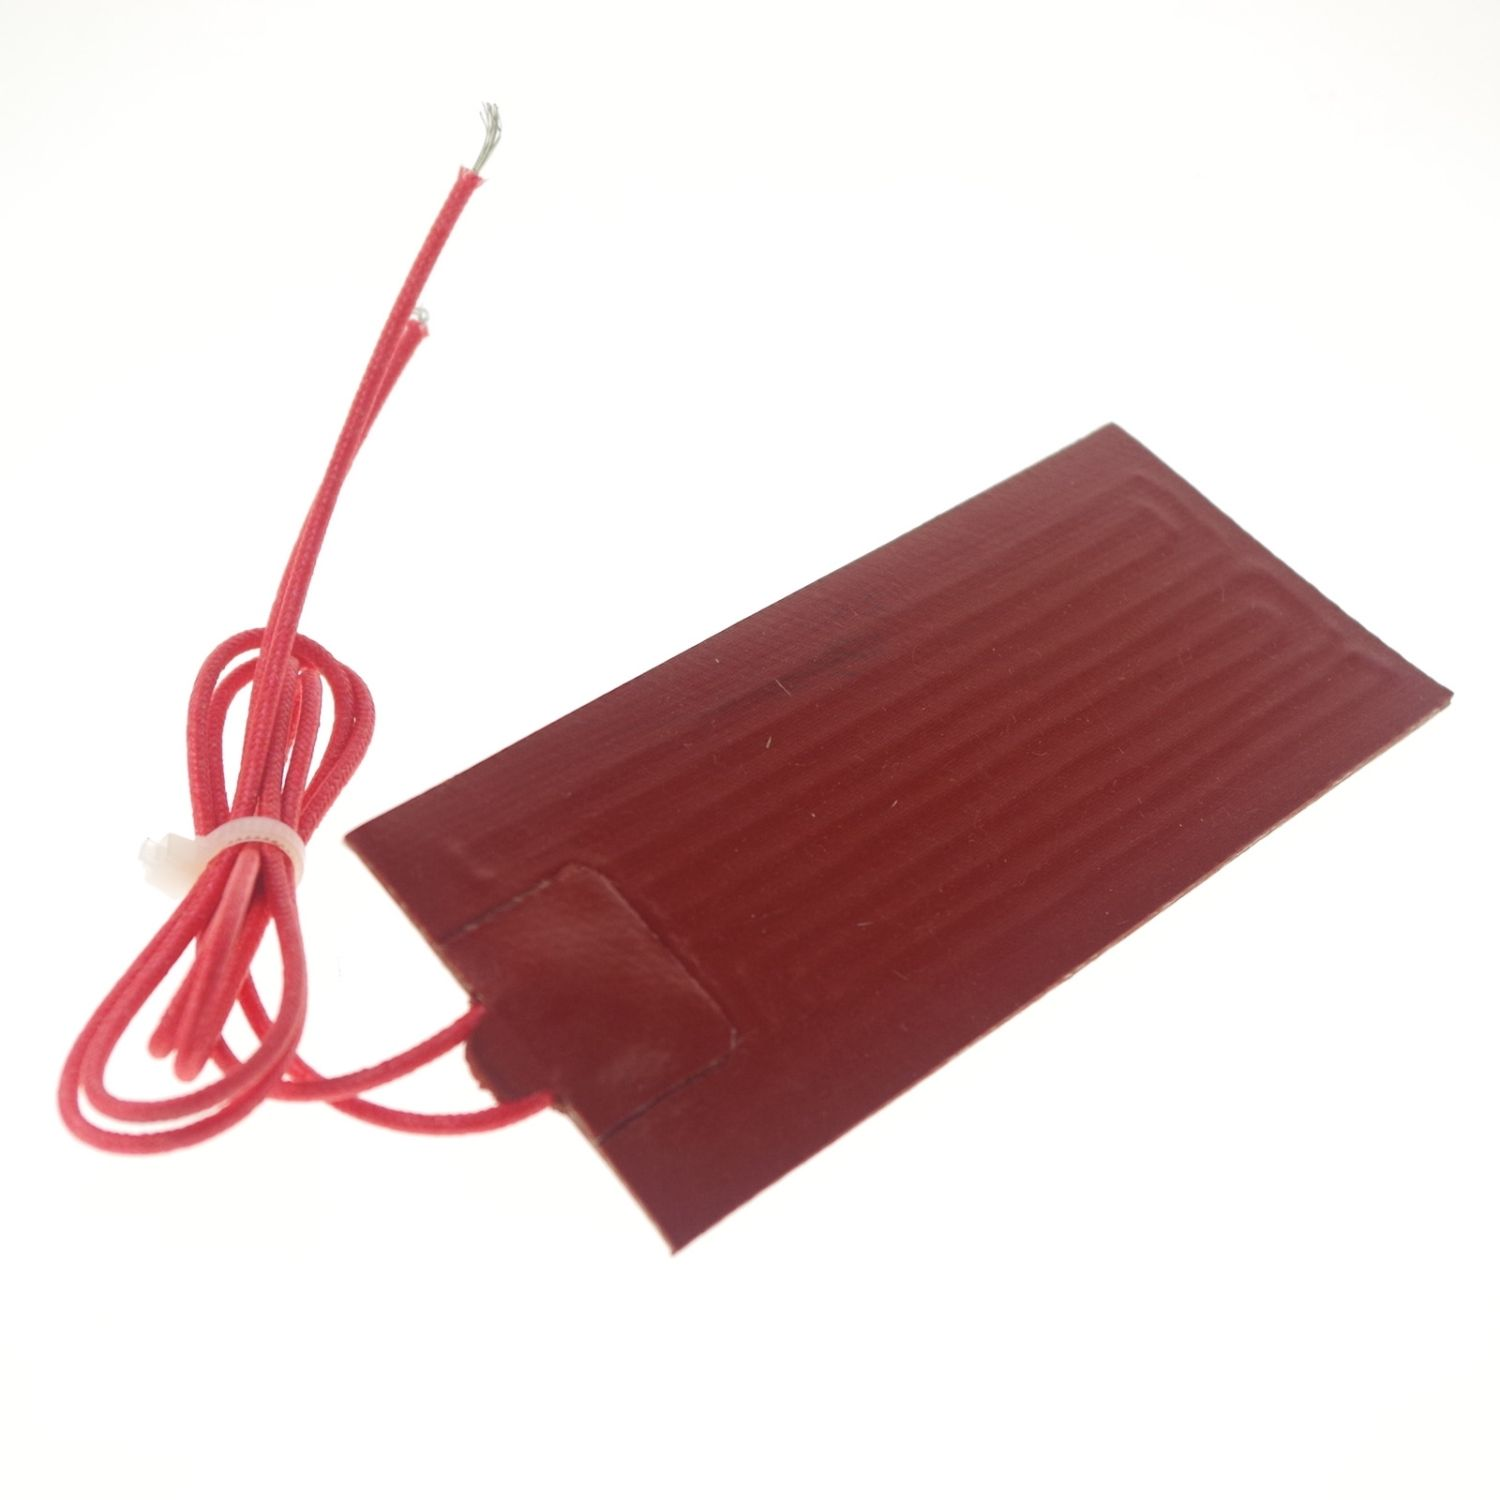 220V AC 300x500mm 500W Rectangle Flexible Waterproof Silicon Heater Pad For Oil Tank Electrical Wires 15x1000mm 75w 200 240v silicon heater strip belt for air conditioner compressor crankcase turbine electrical wires